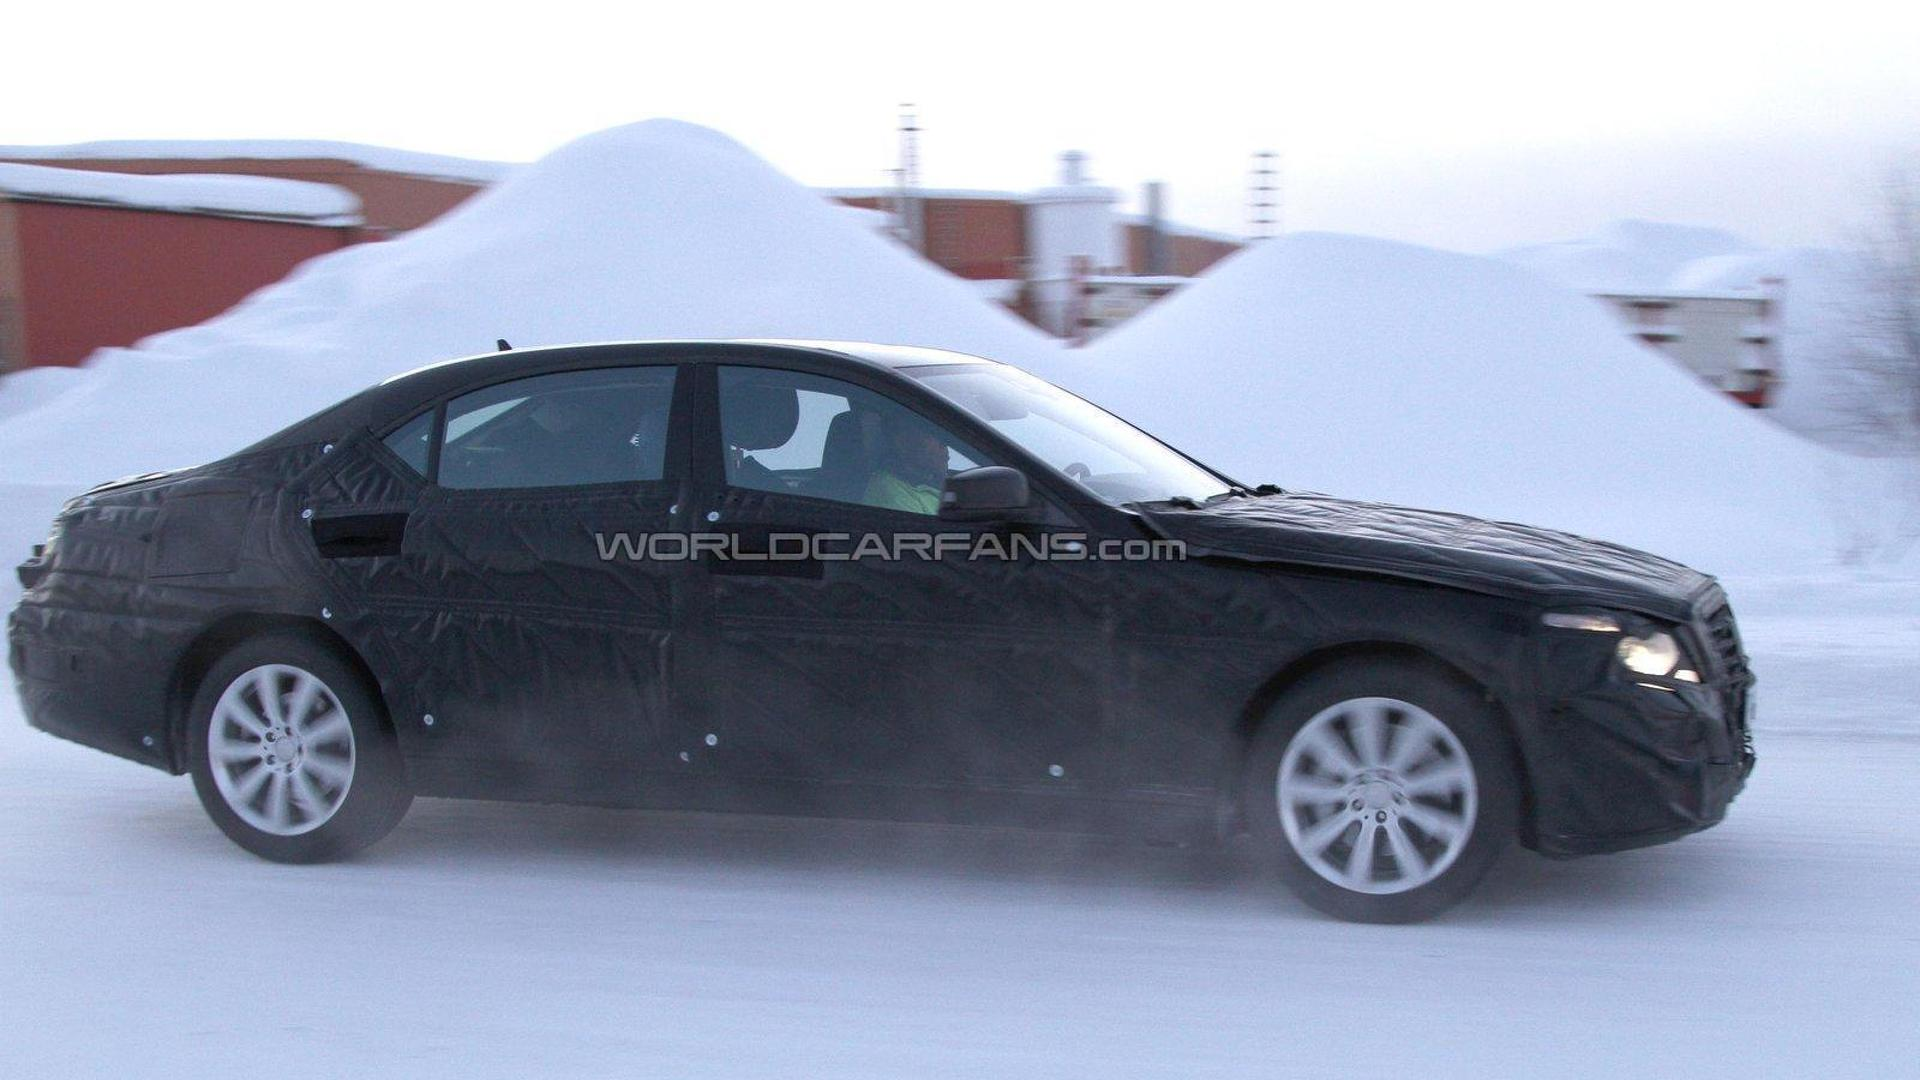 2013 Mercedes-Benz S-Class spied winter testing